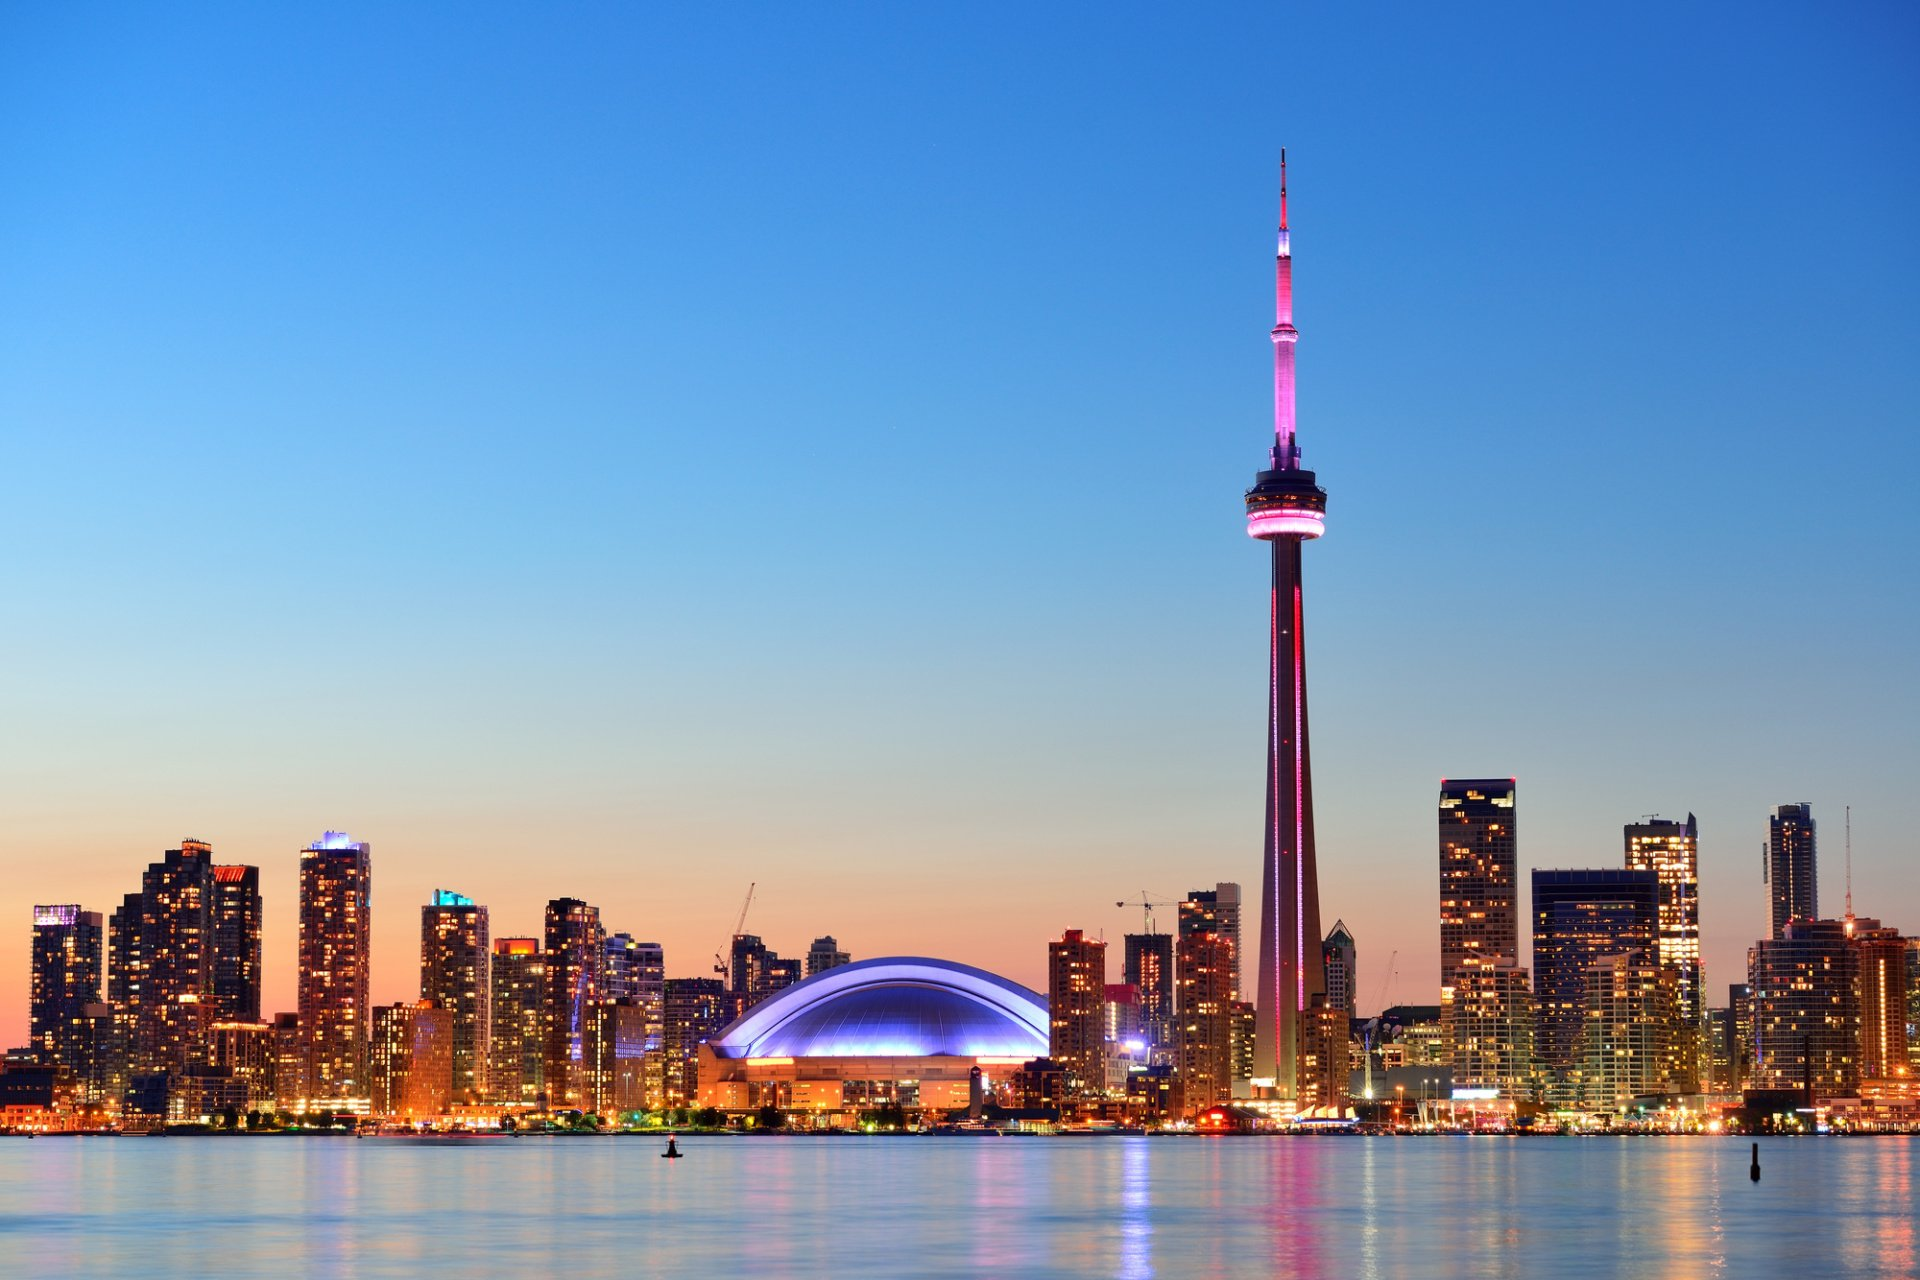 10 Things to Do In Toronto www.torontoairportslimousine.com